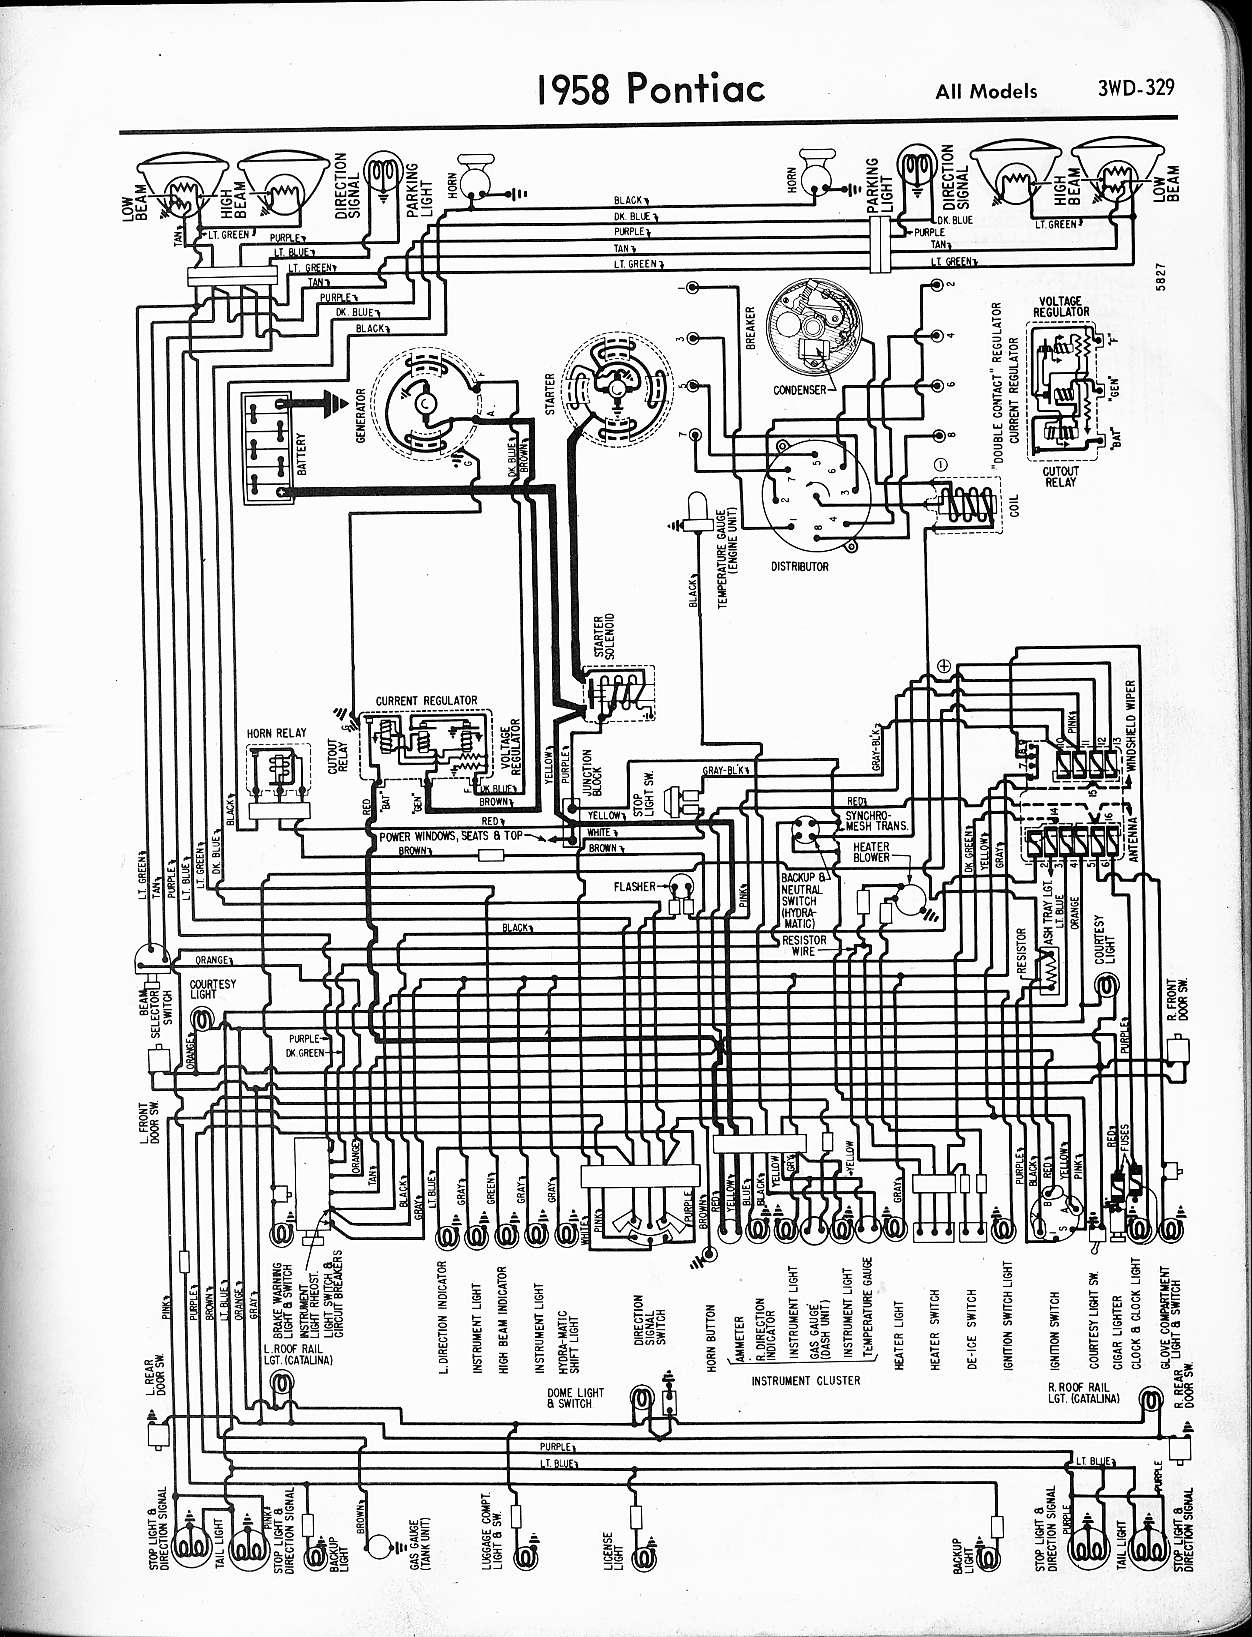 1960 pontiac wiring diagram schematic list of wiring diagrams mercedes radio wiring harness thesamba com type 1 wiring diagrams